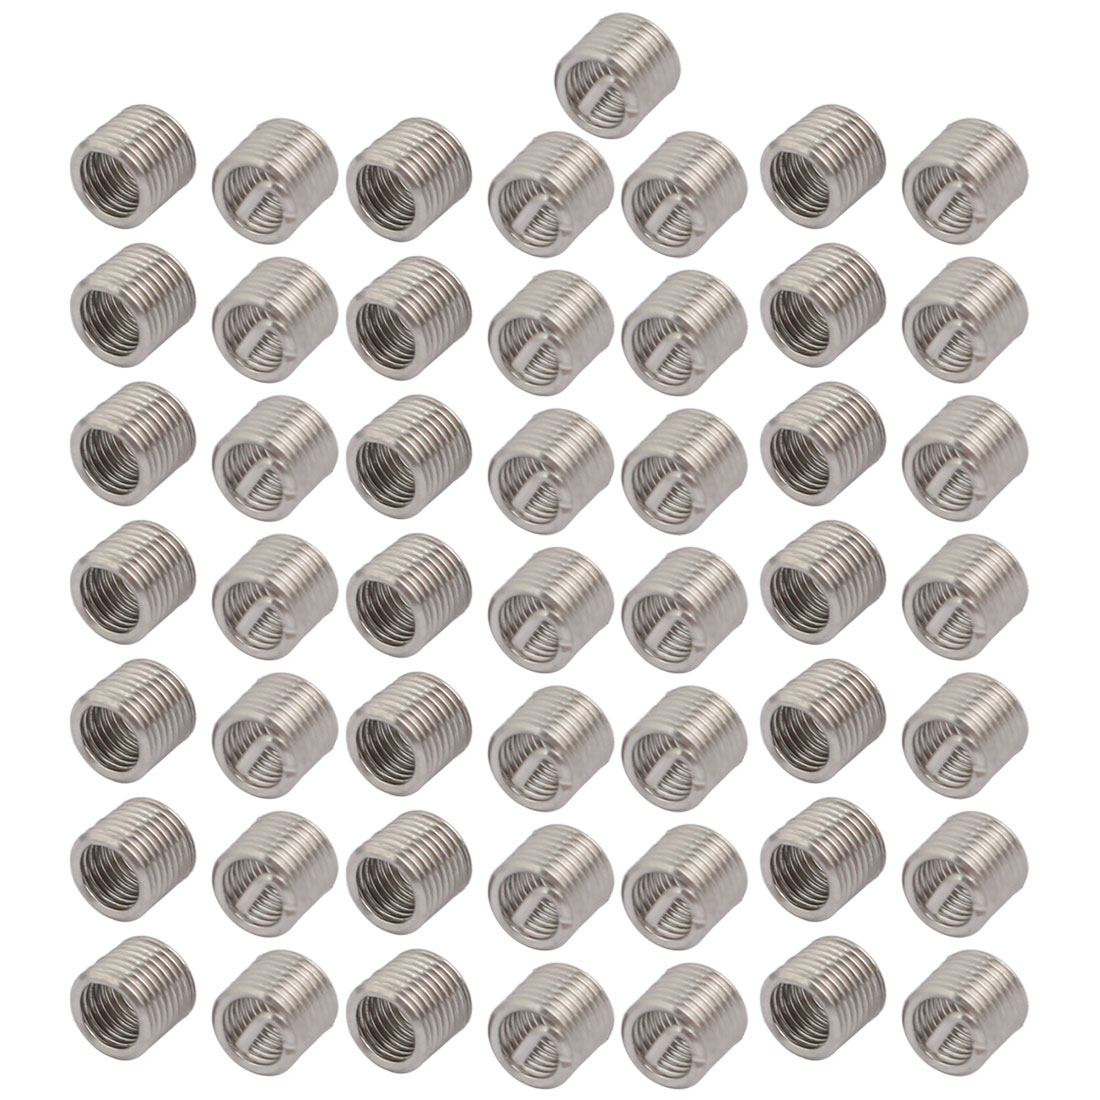 uxcell 8-32x0.328 304 Stainless Steel Helical Coil Wire Thread Insert 25pcs